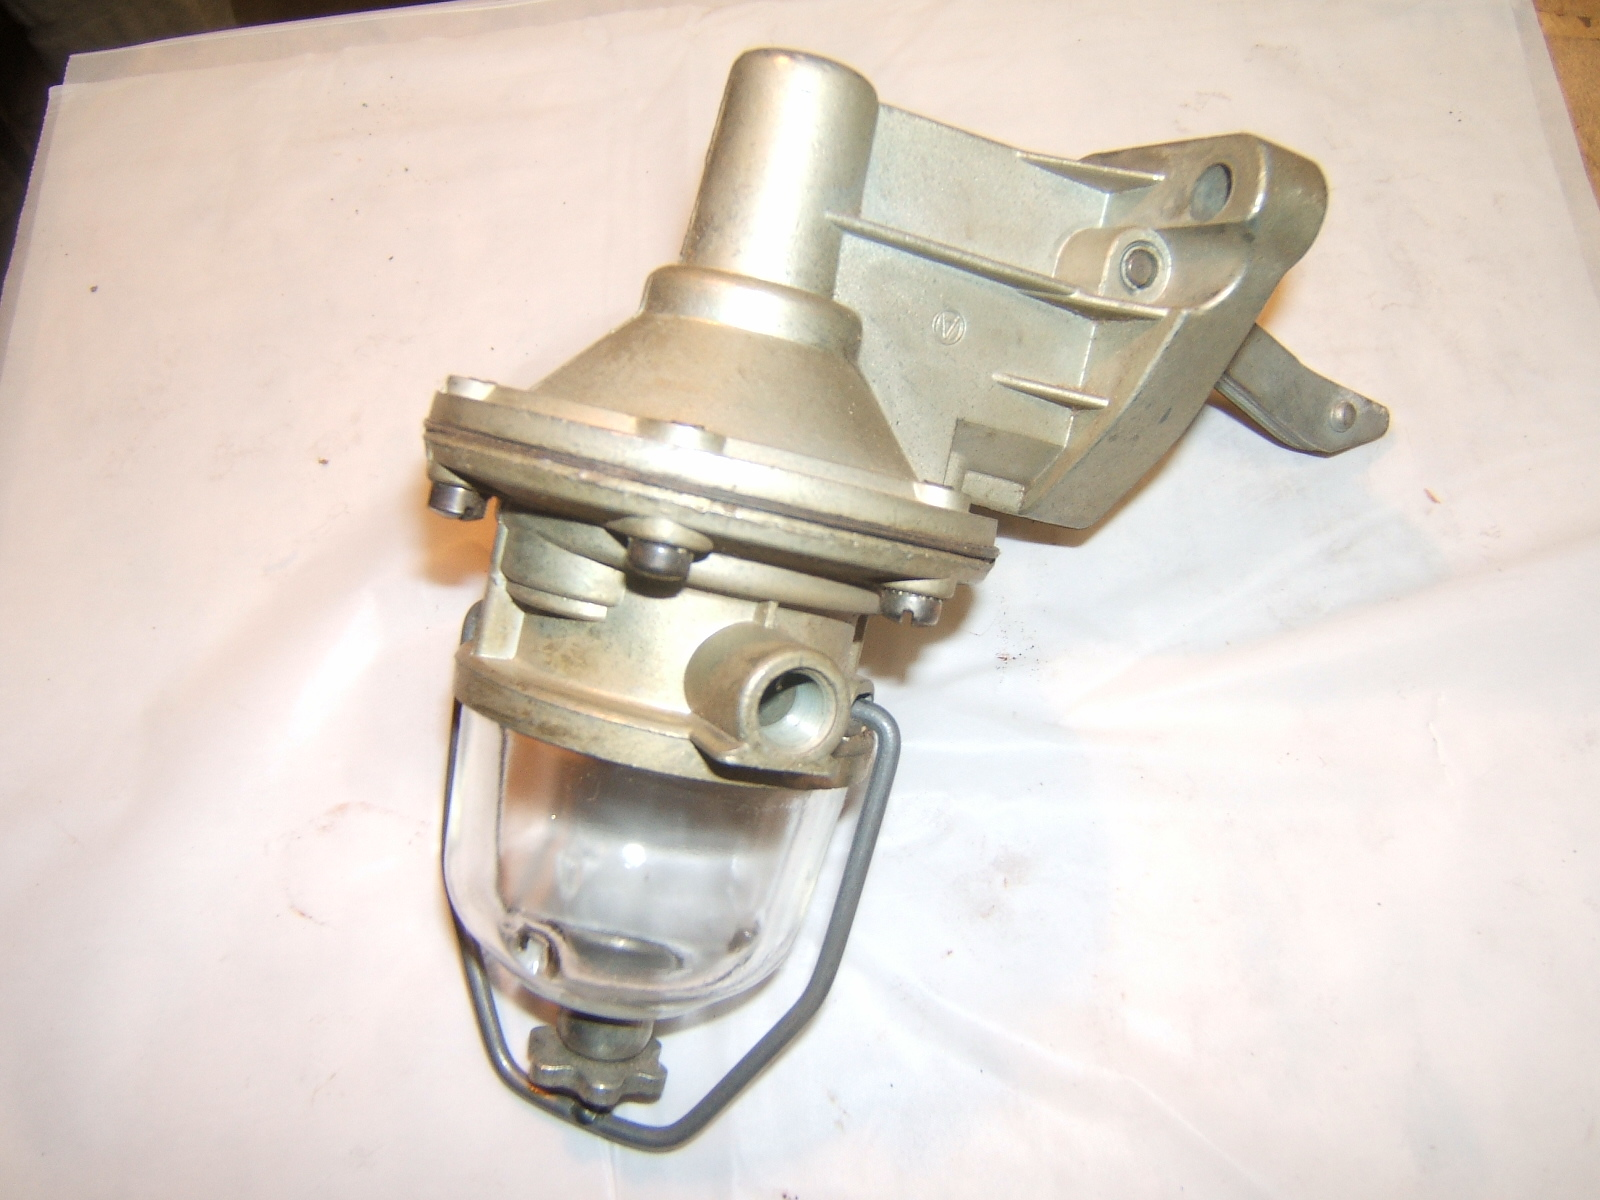 1941-65 IHC International truck fuel pump 9501 (a 9501airtex)